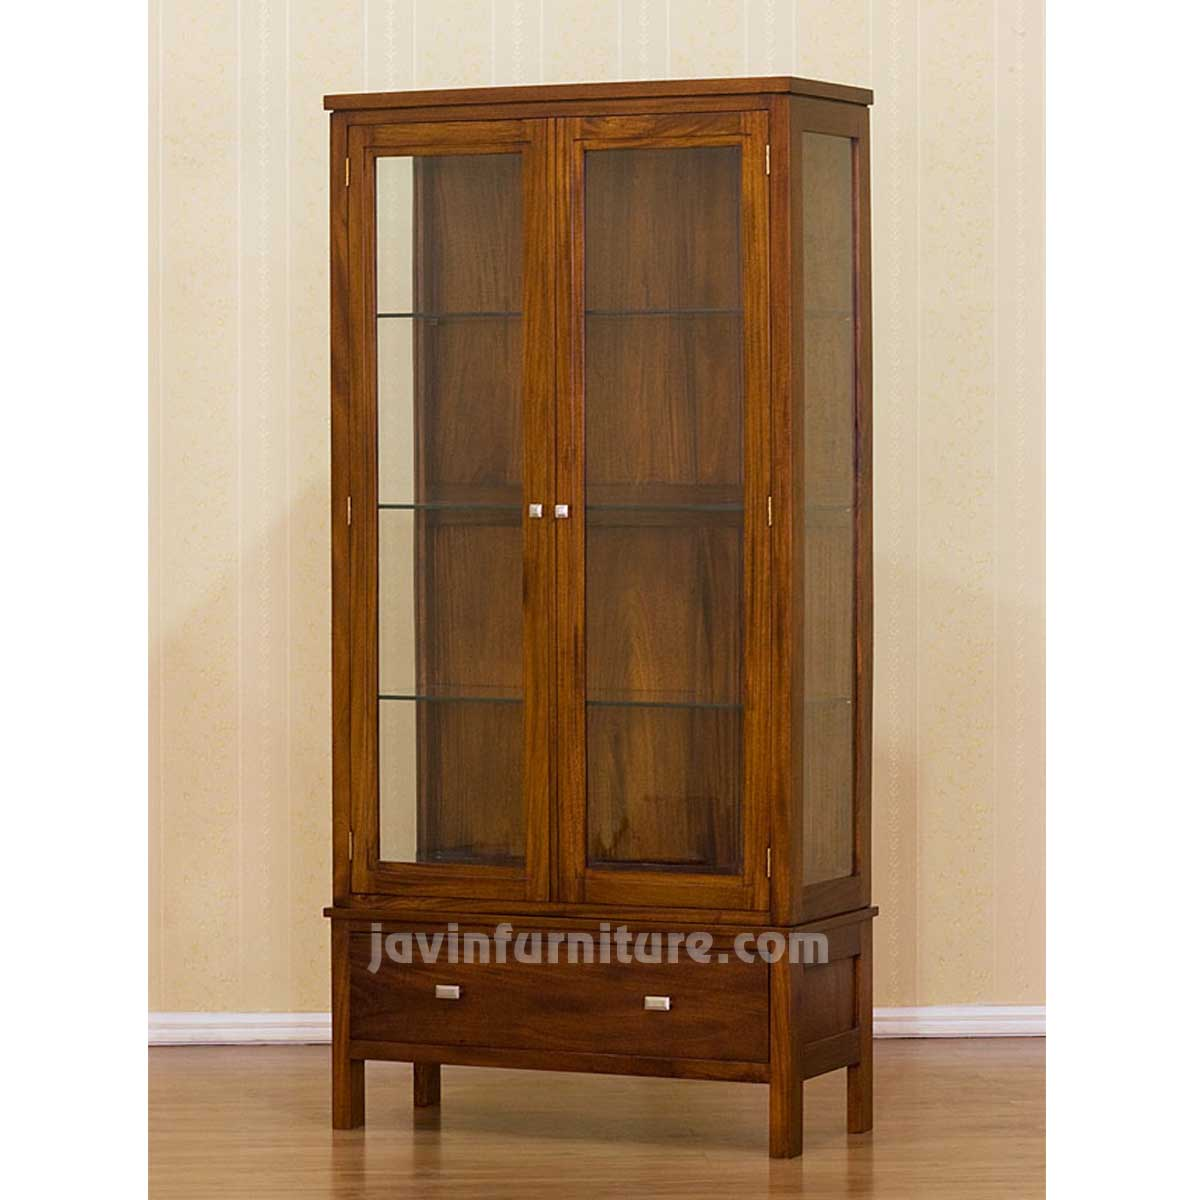 Wooden Slim Storage Cabinet With Glass Doors